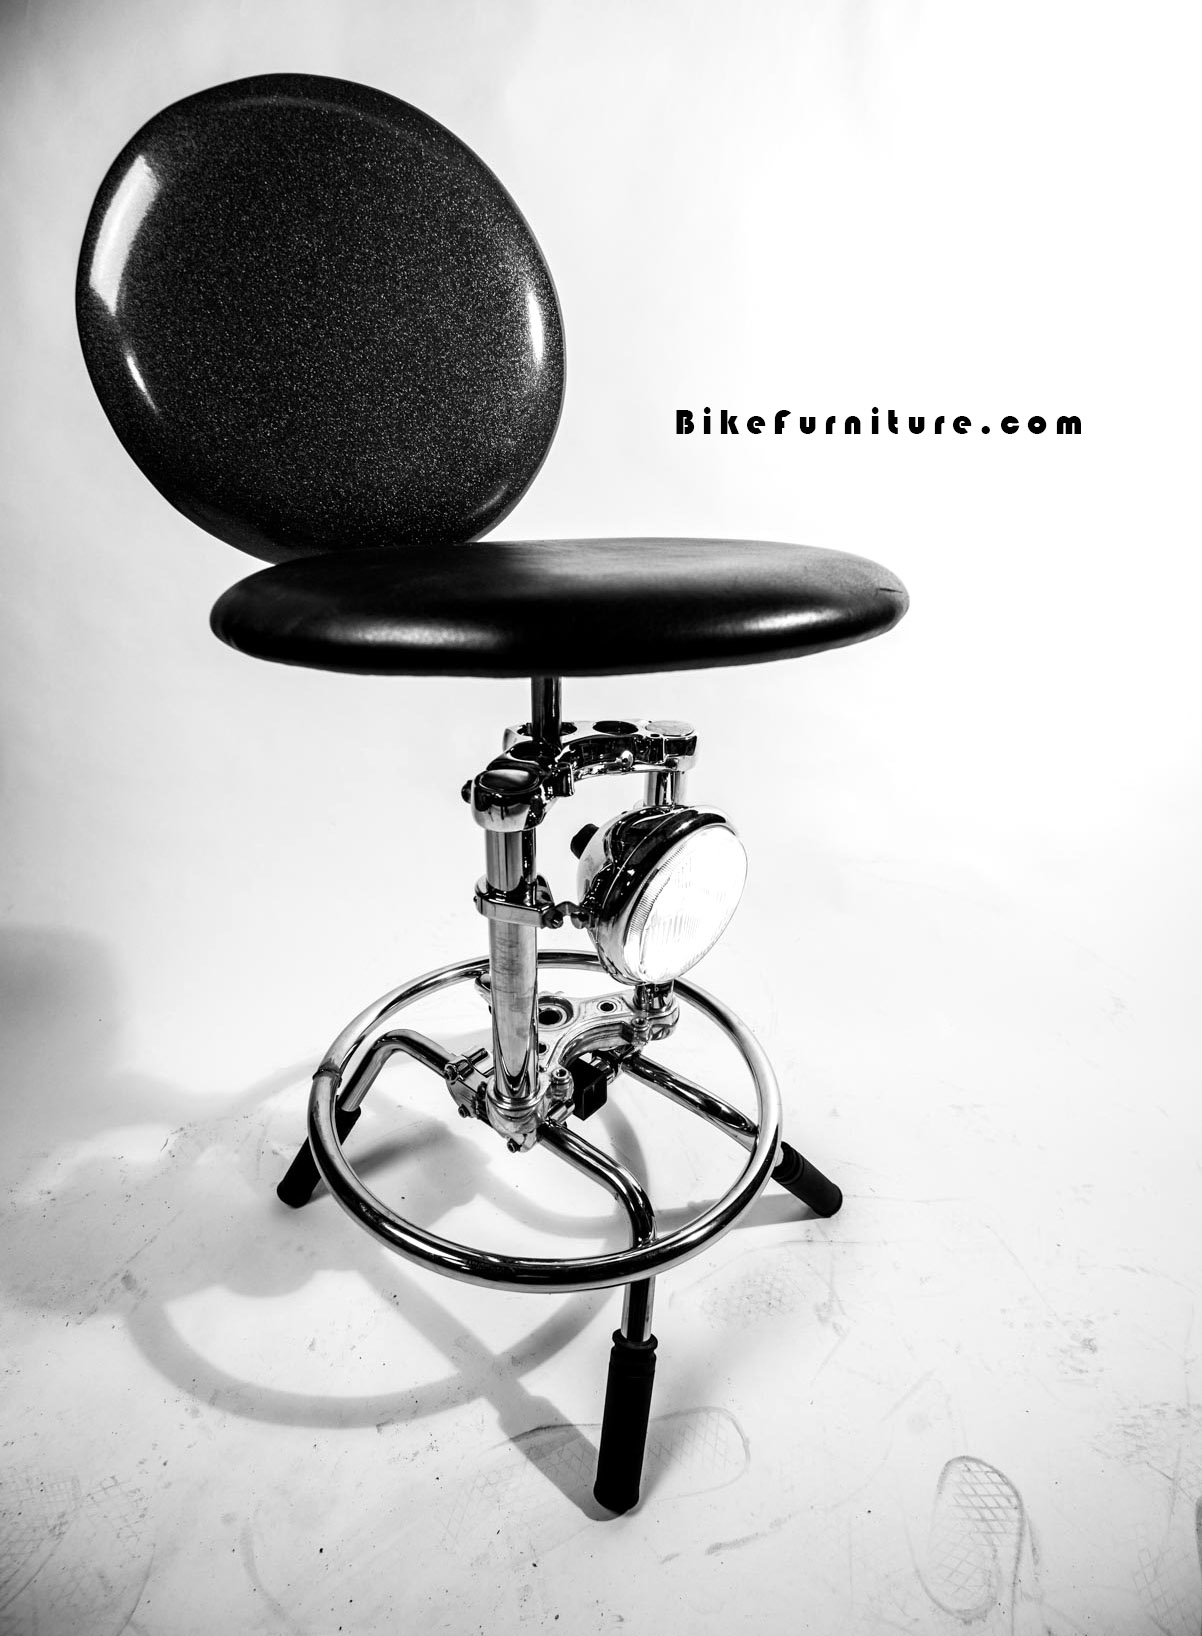 Moto stool - cushion - prototype  Can be made with or without back